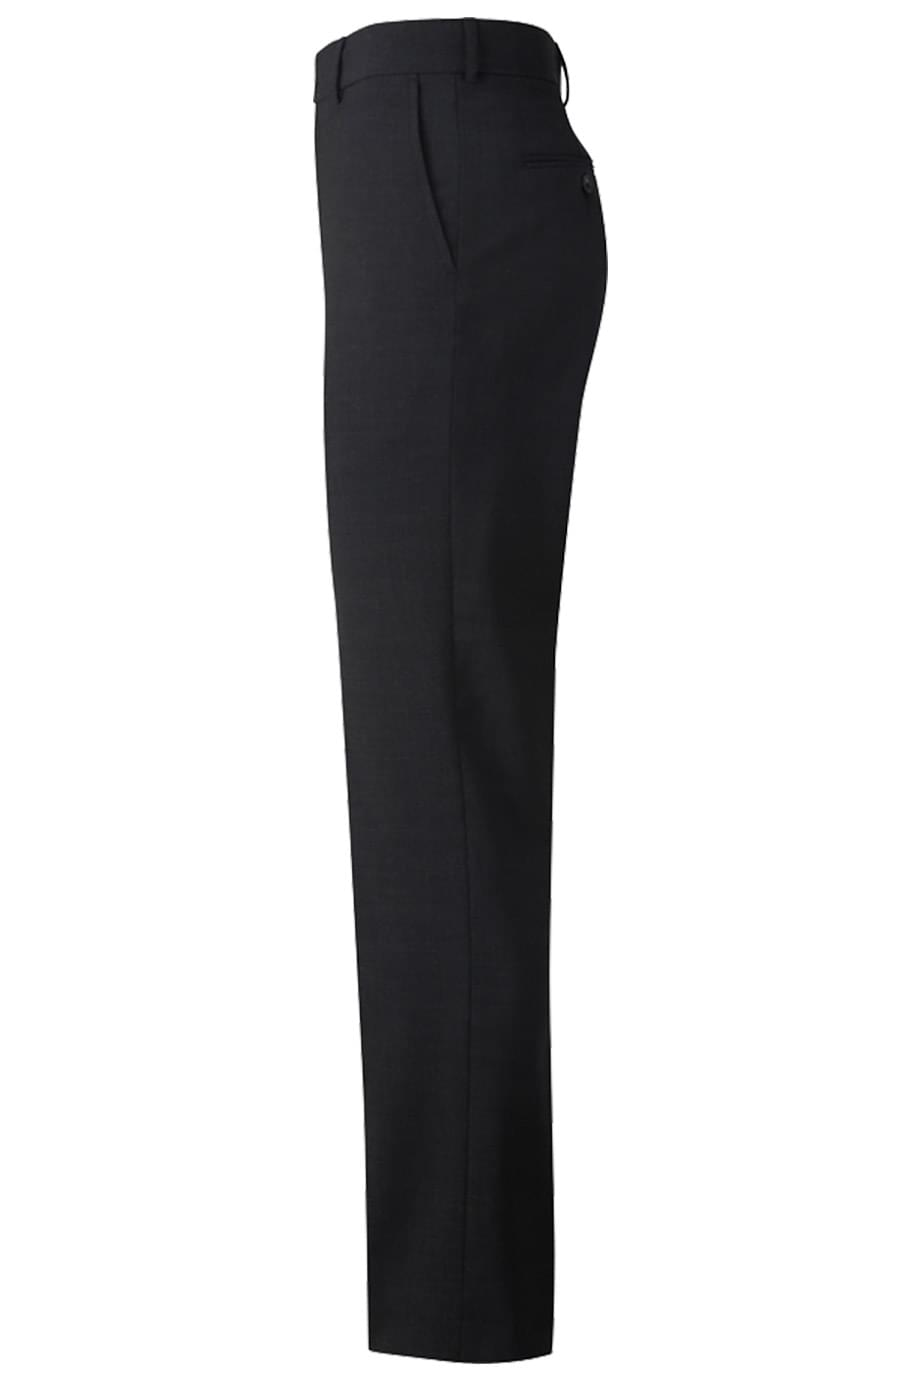 REDWOOD & ROSS® RUSSEL DRESS PANT